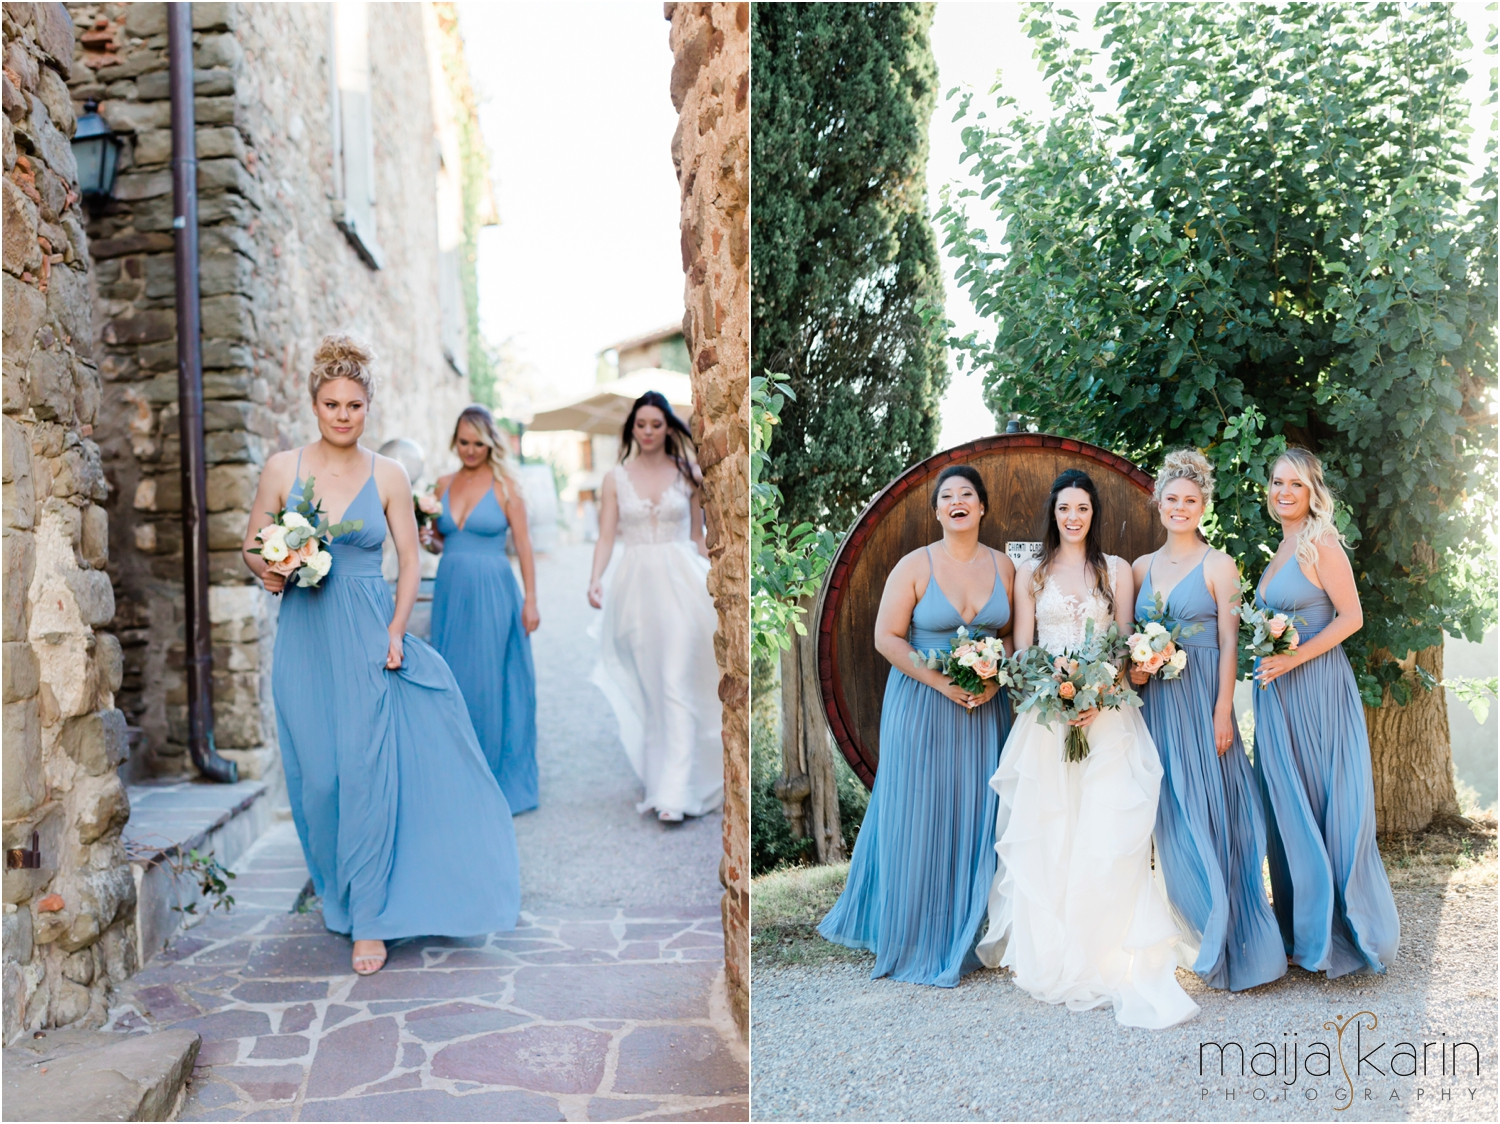 Castelvecchi-Tuscany-Wedding-Maija-Karin-Photography_0049.jpg